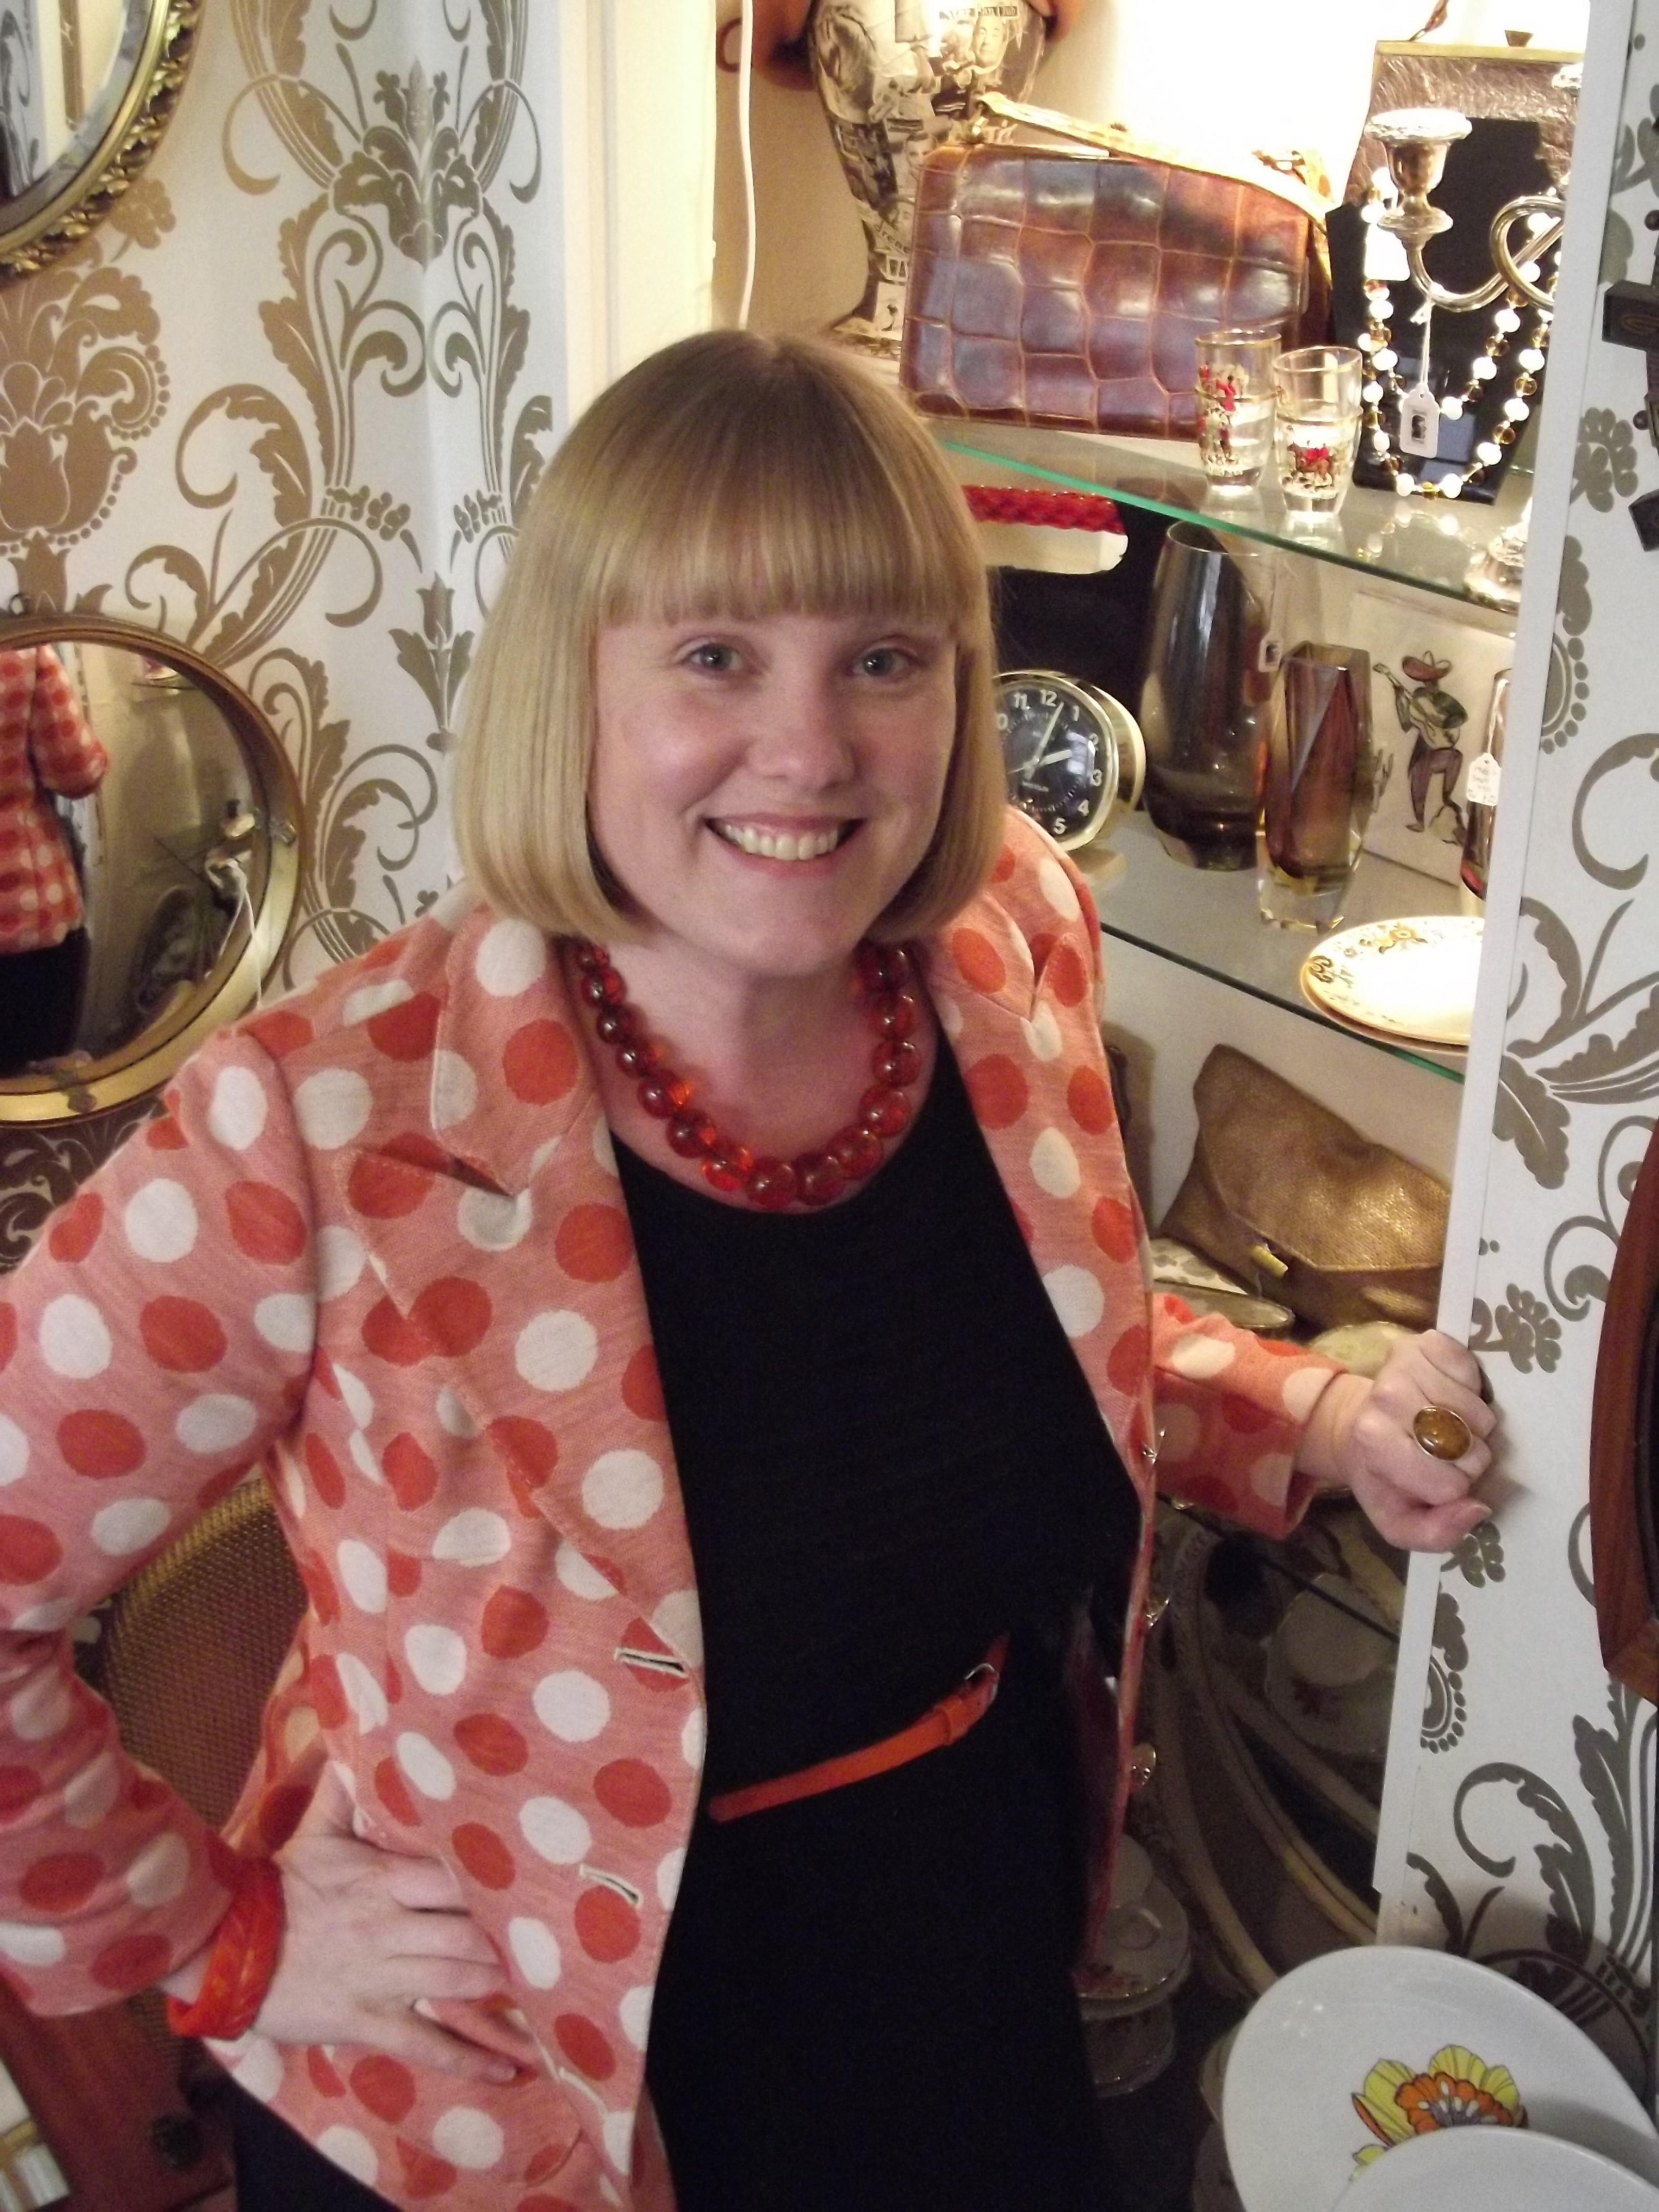 London's Antique & Textiles fair showcases young talent